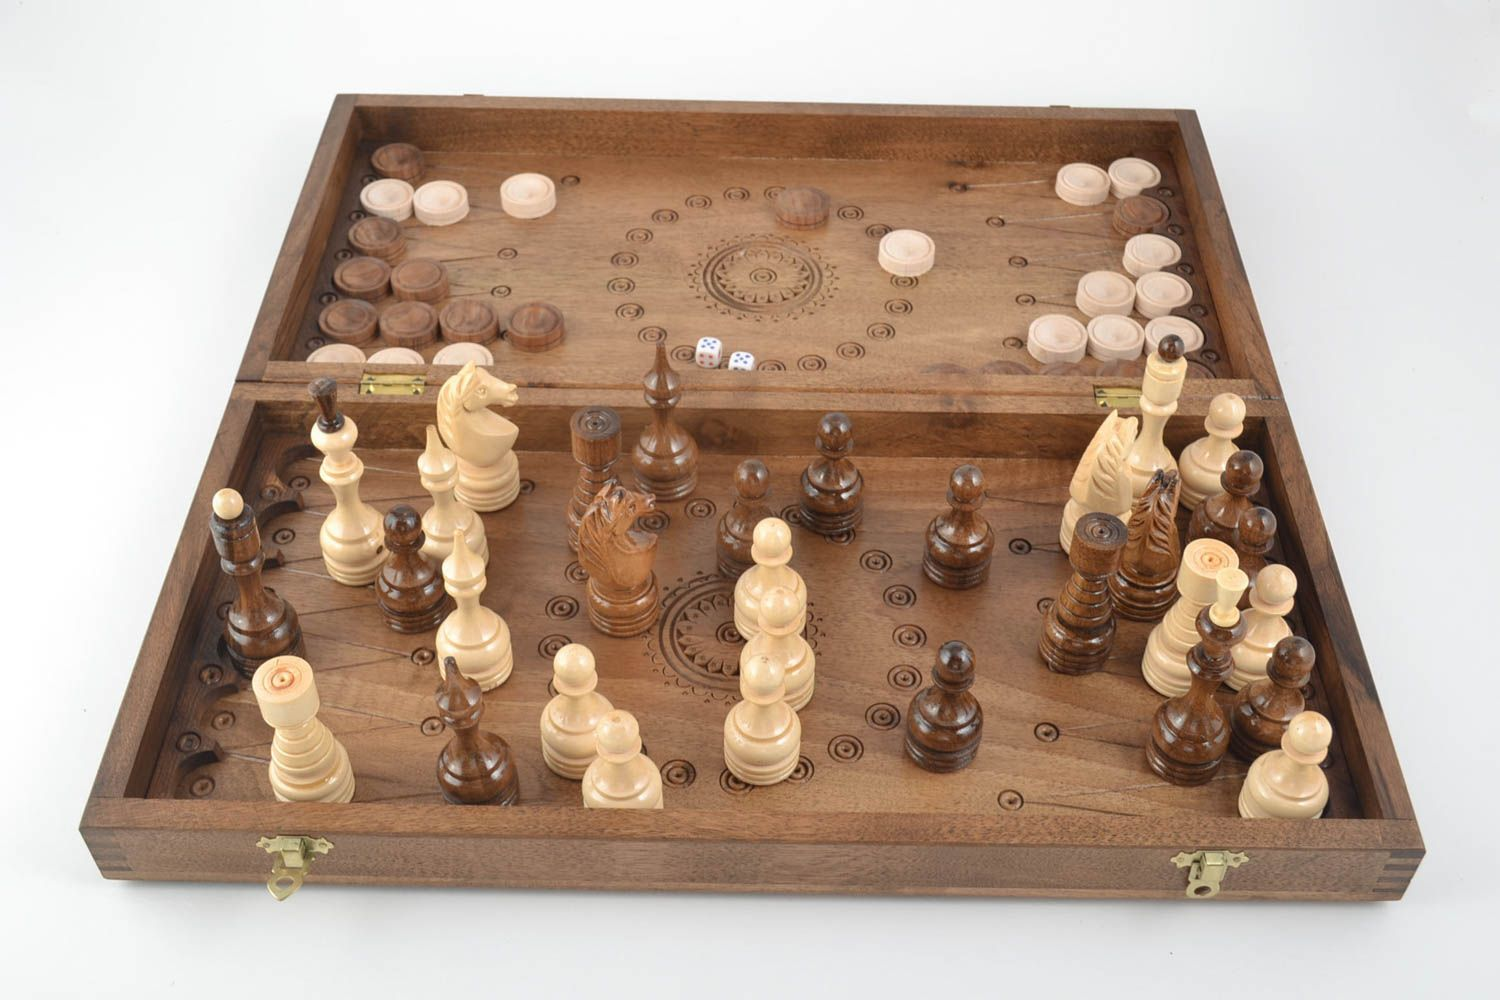 Handmade board games wooden chessboard chess pieces best gifts for him photo 3